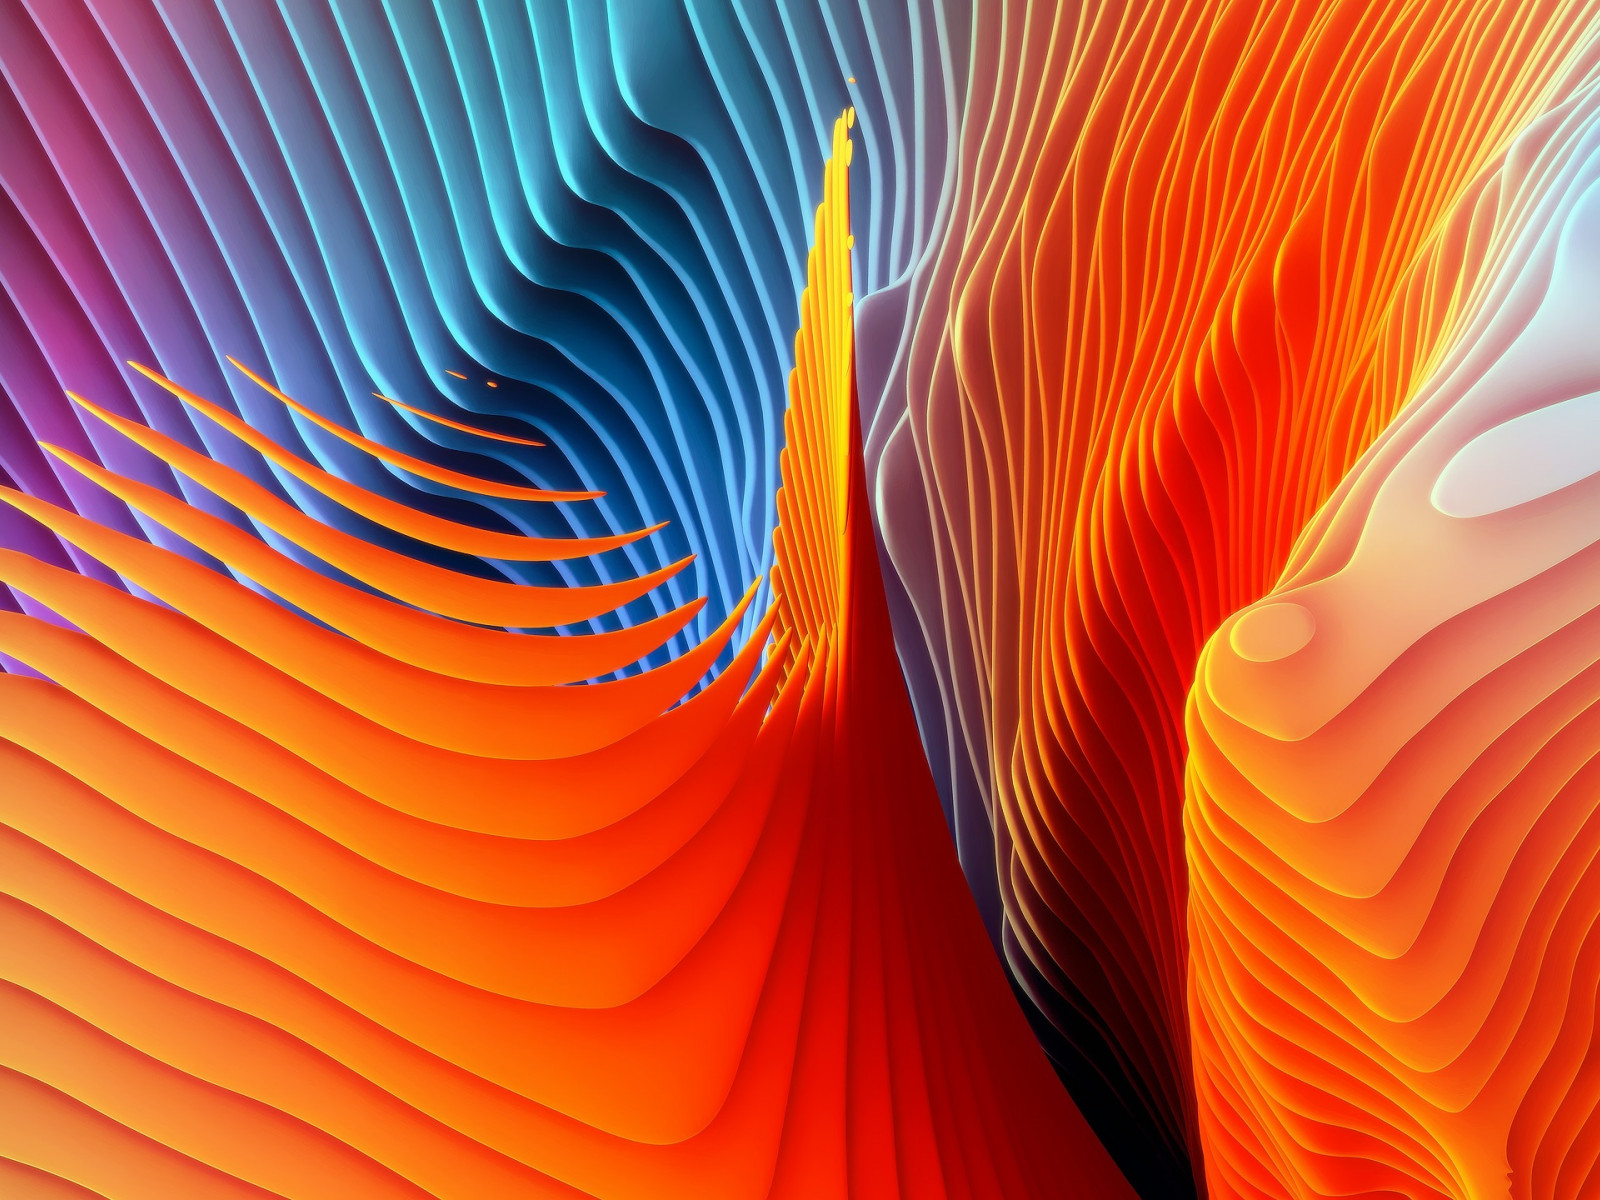 Colorful spirals wallpaper 1600x1200